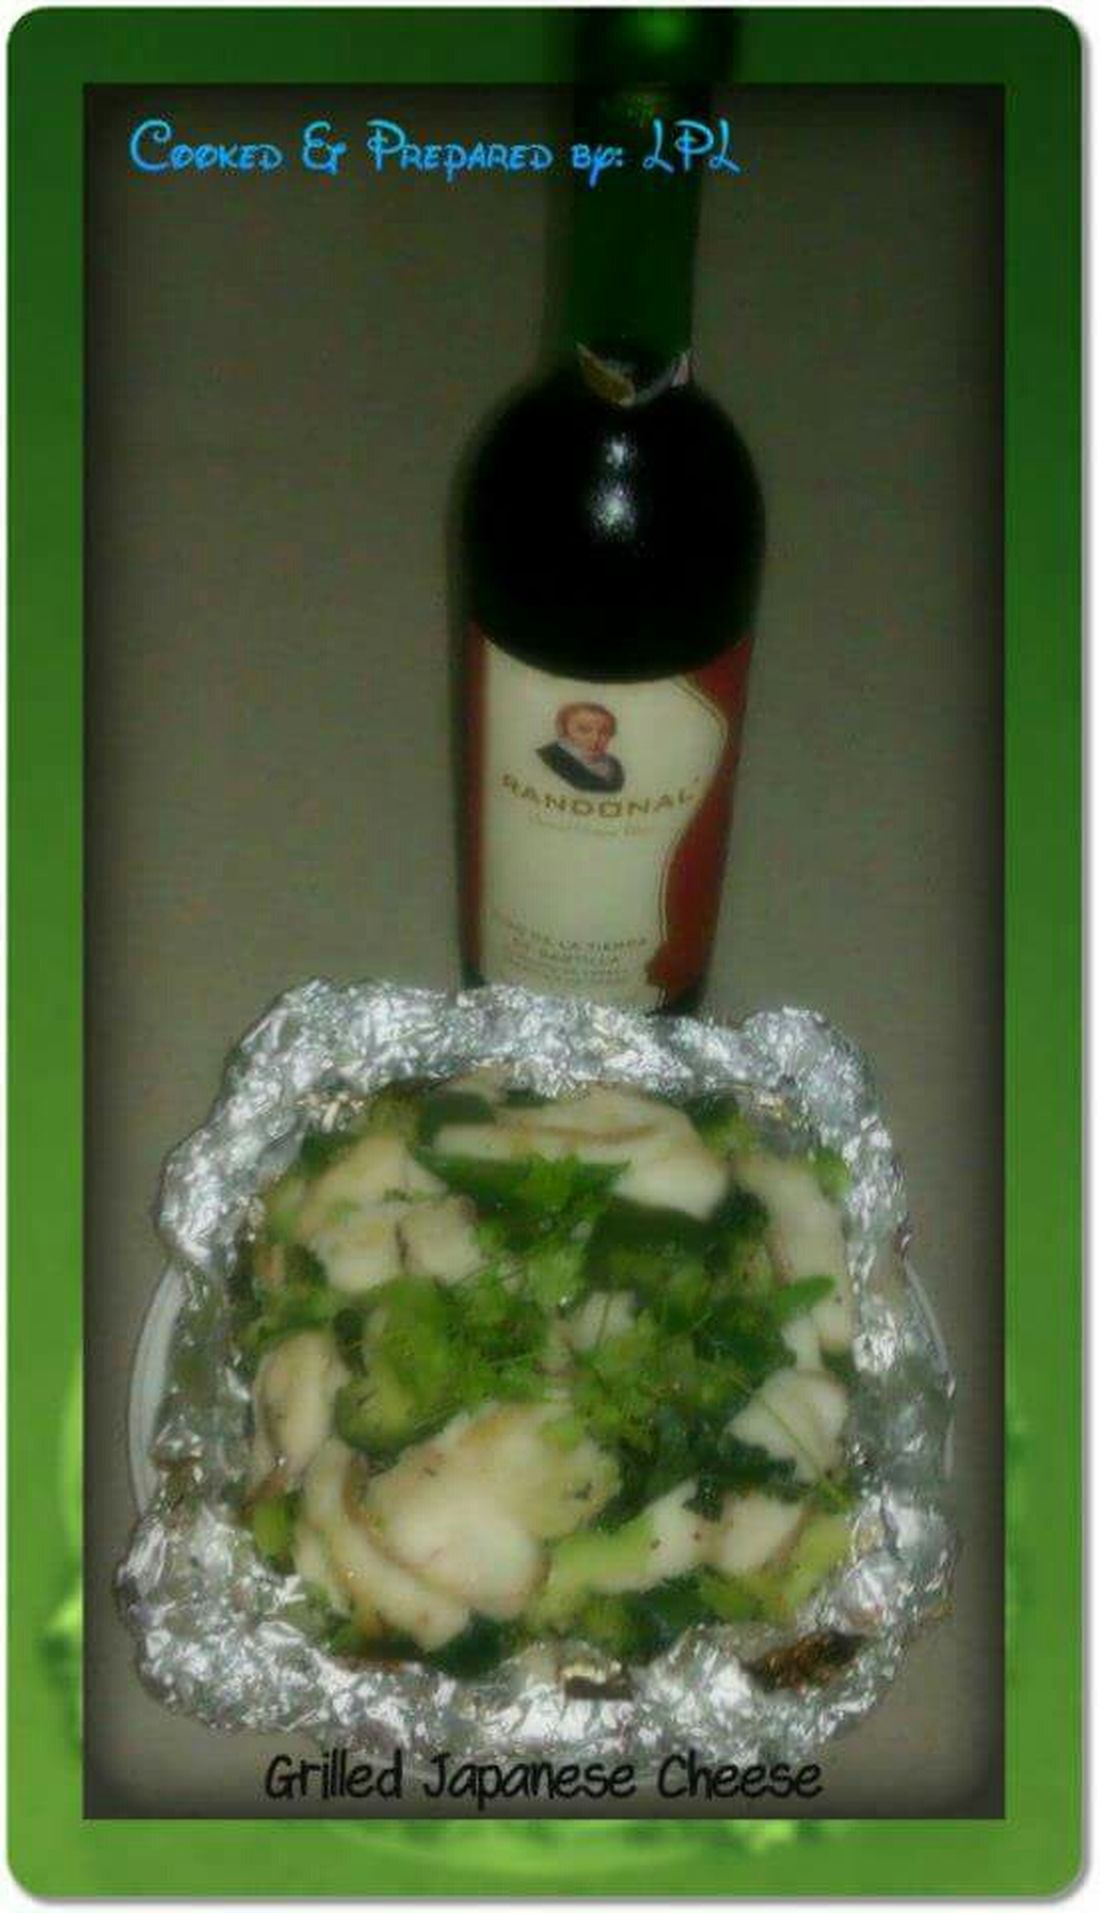 Honemadeyummies Japanesefood Wine Tasting Redwine Tasty Steam Fish With Broccoli Sisterhood ♥ Cousins Time 💞